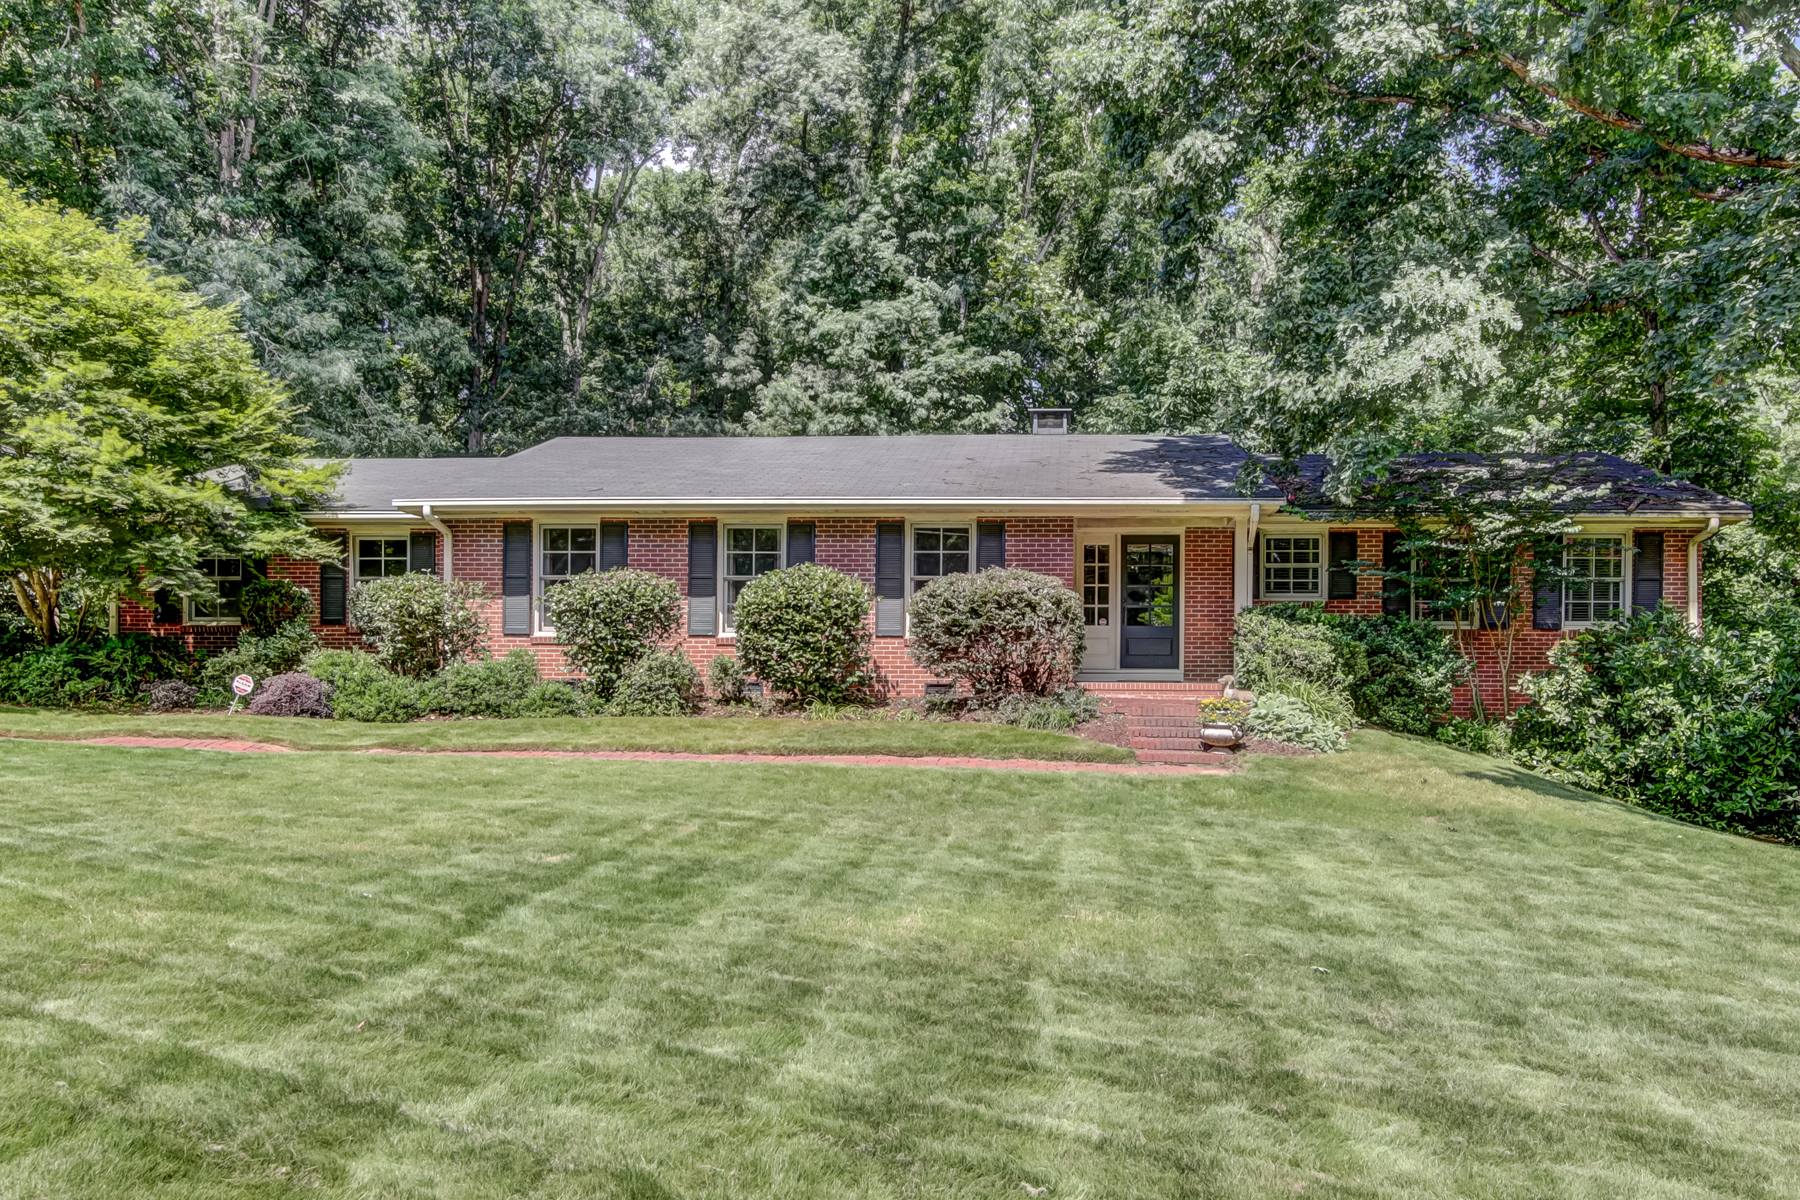 Single Family Home for Sale at Sandy Springs - Perfect 10! 6580 Williamson Dr Sandy Springs, Georgia 30328 United States